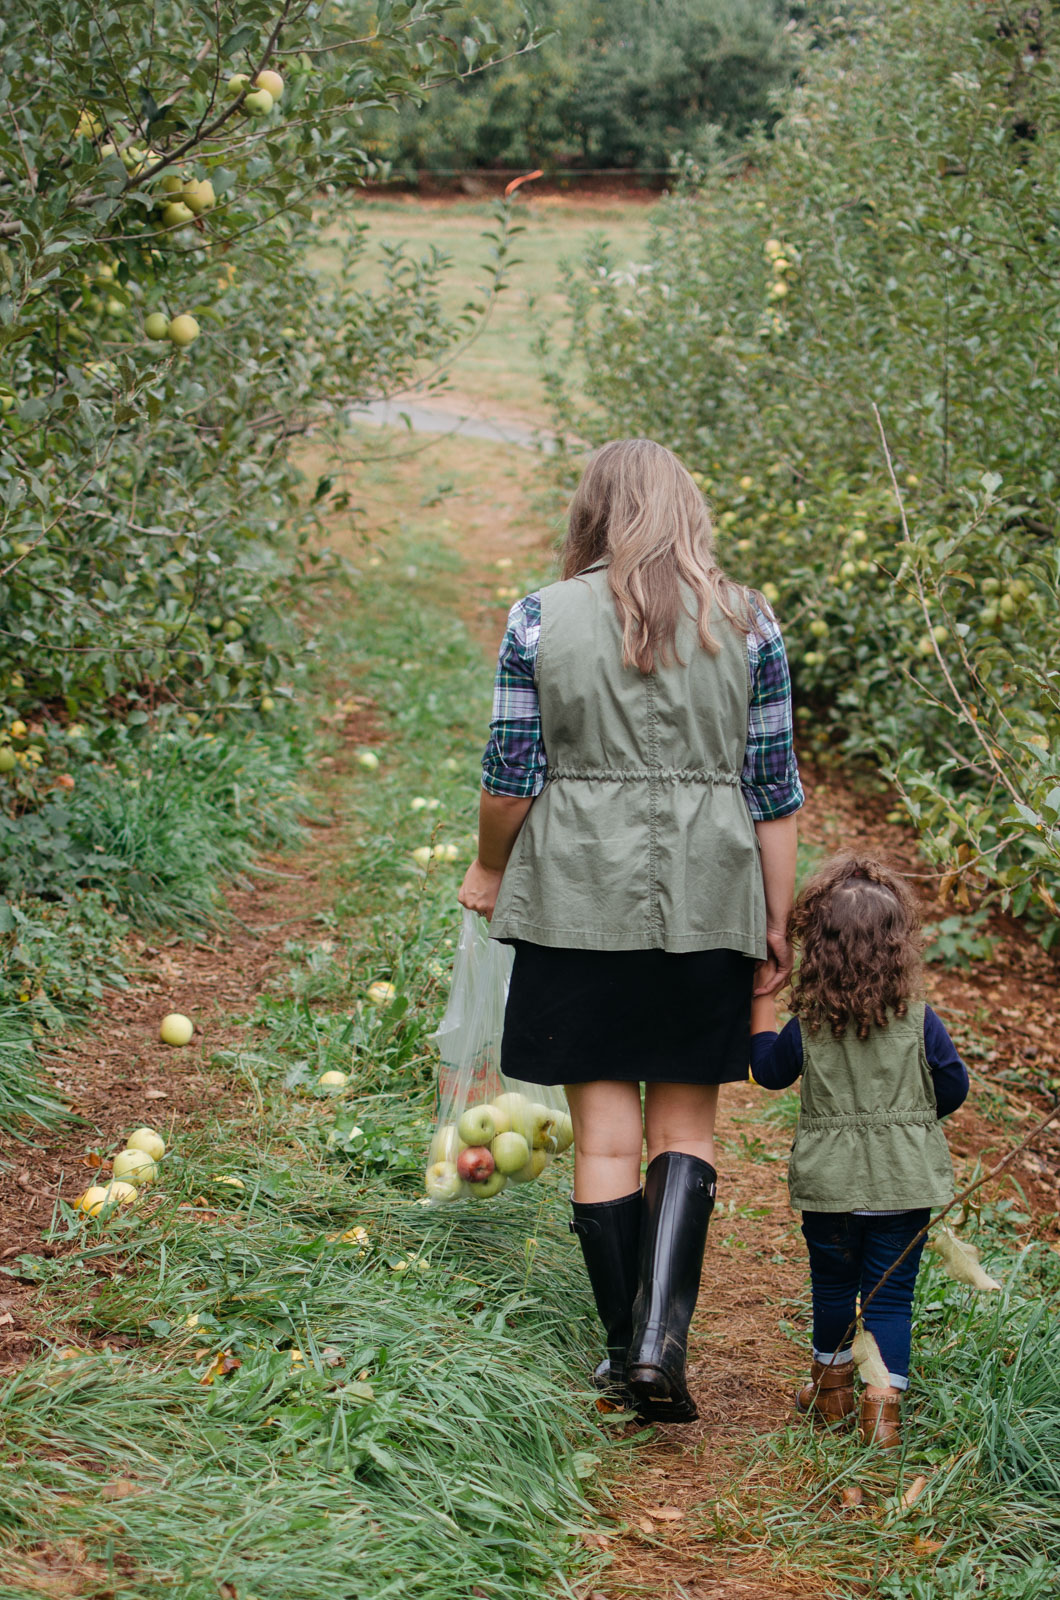 mommy daughter apple picking outfits - what to wear apple picking | For more mommy daughter outfit ideas, head to bylaurenm.com!